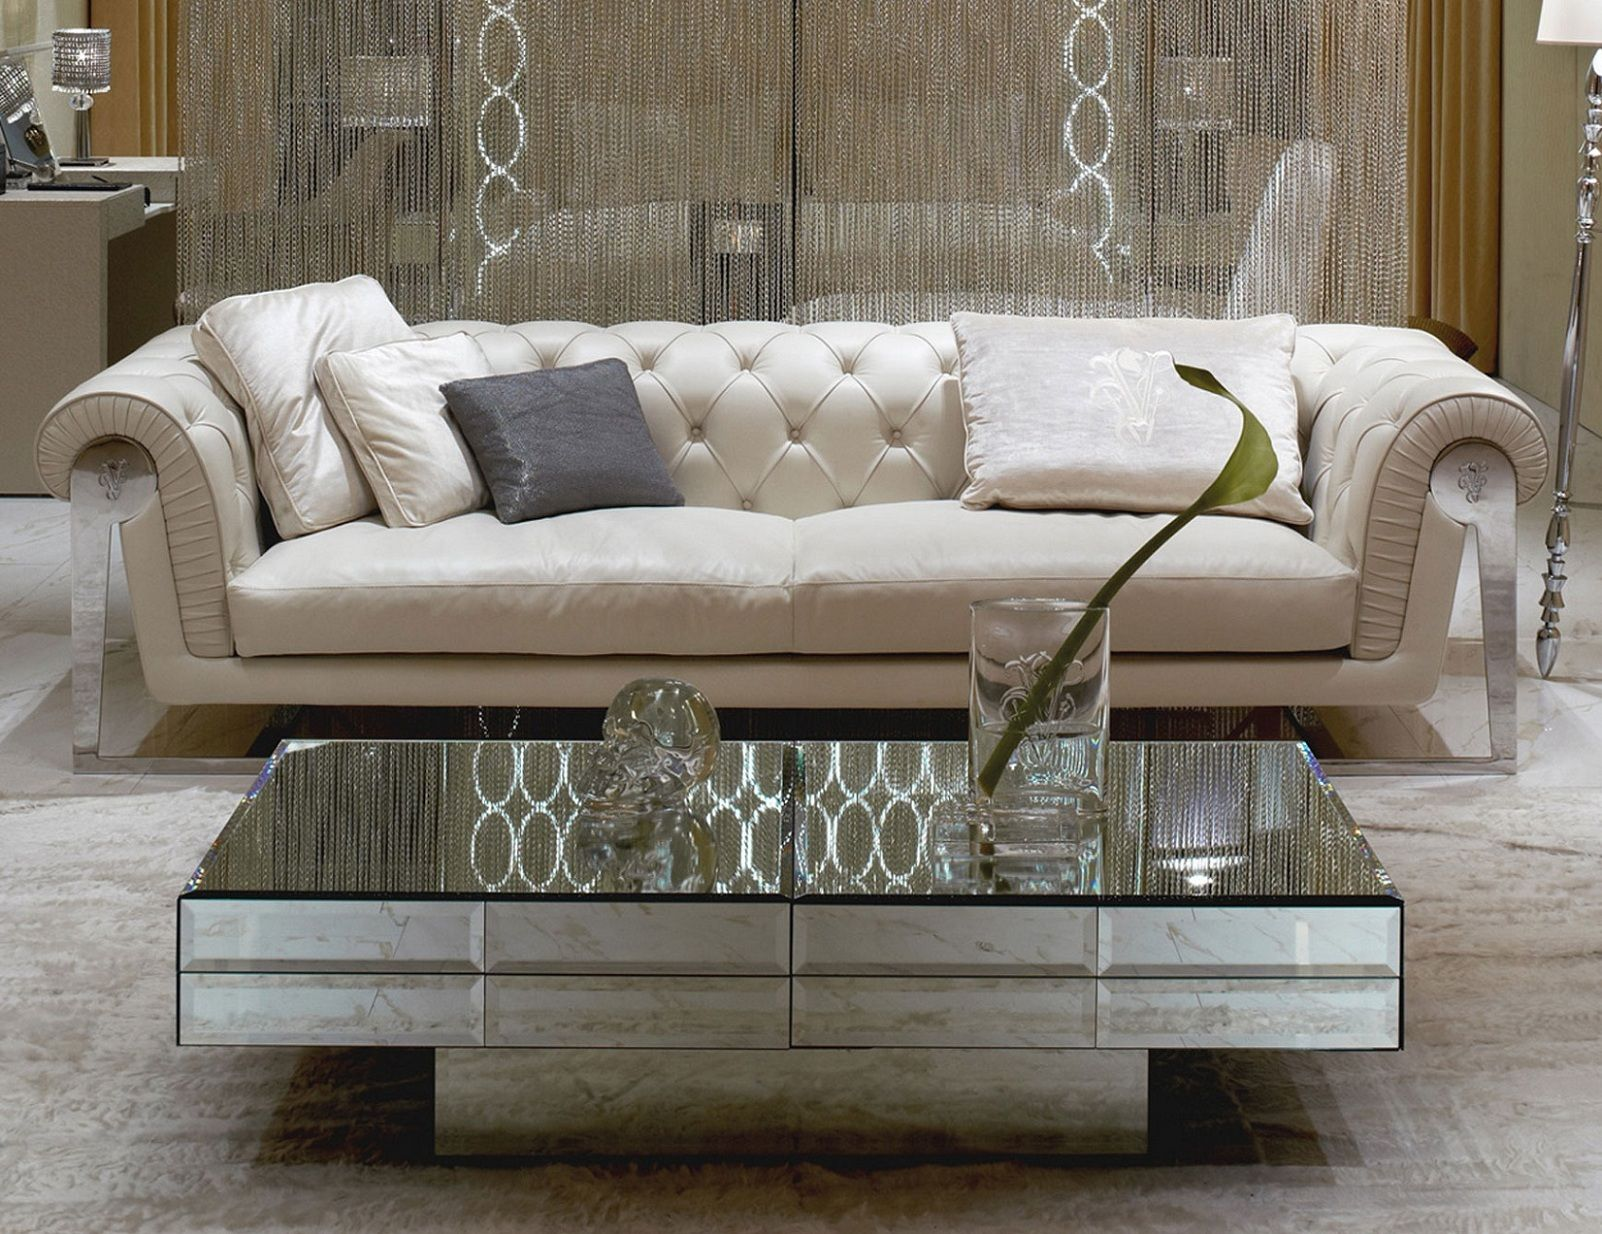 Superbe Hollywood Luxe Living Room Interiors, Designer Furniture U0026 Beautiful Home  Decor, Beverly Hills